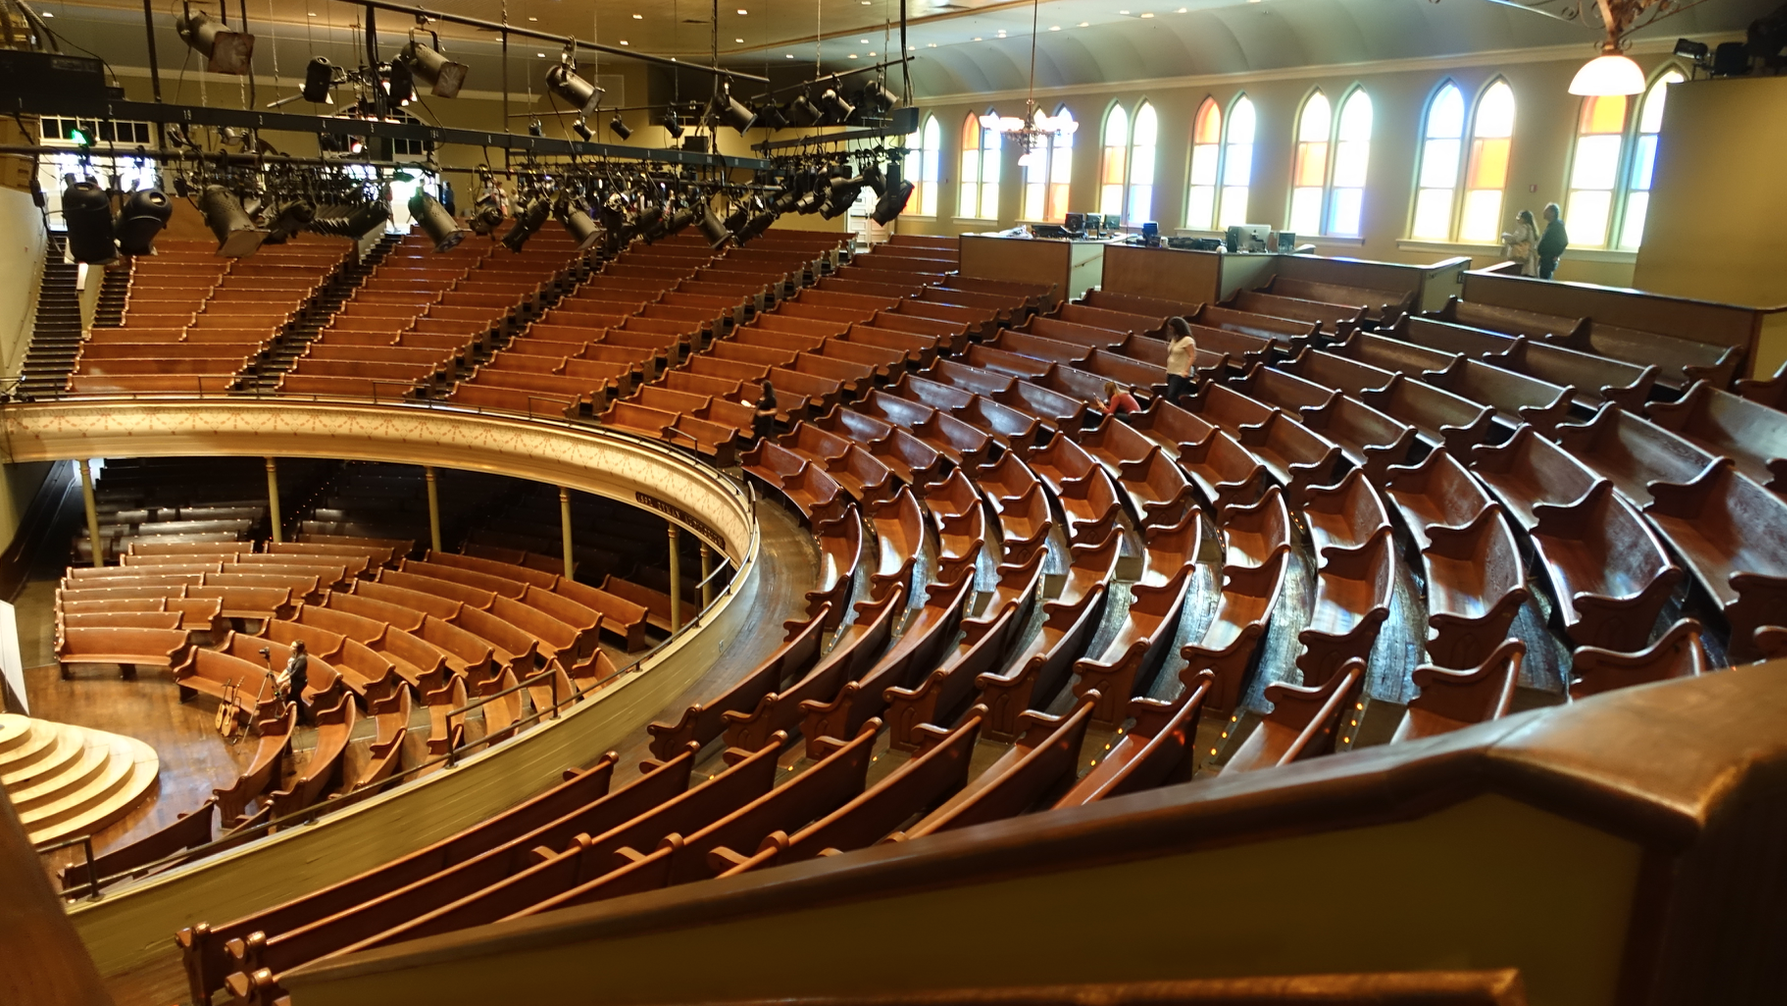 Nashville's Ryman Auditorium is the mother church of the city's music industry.